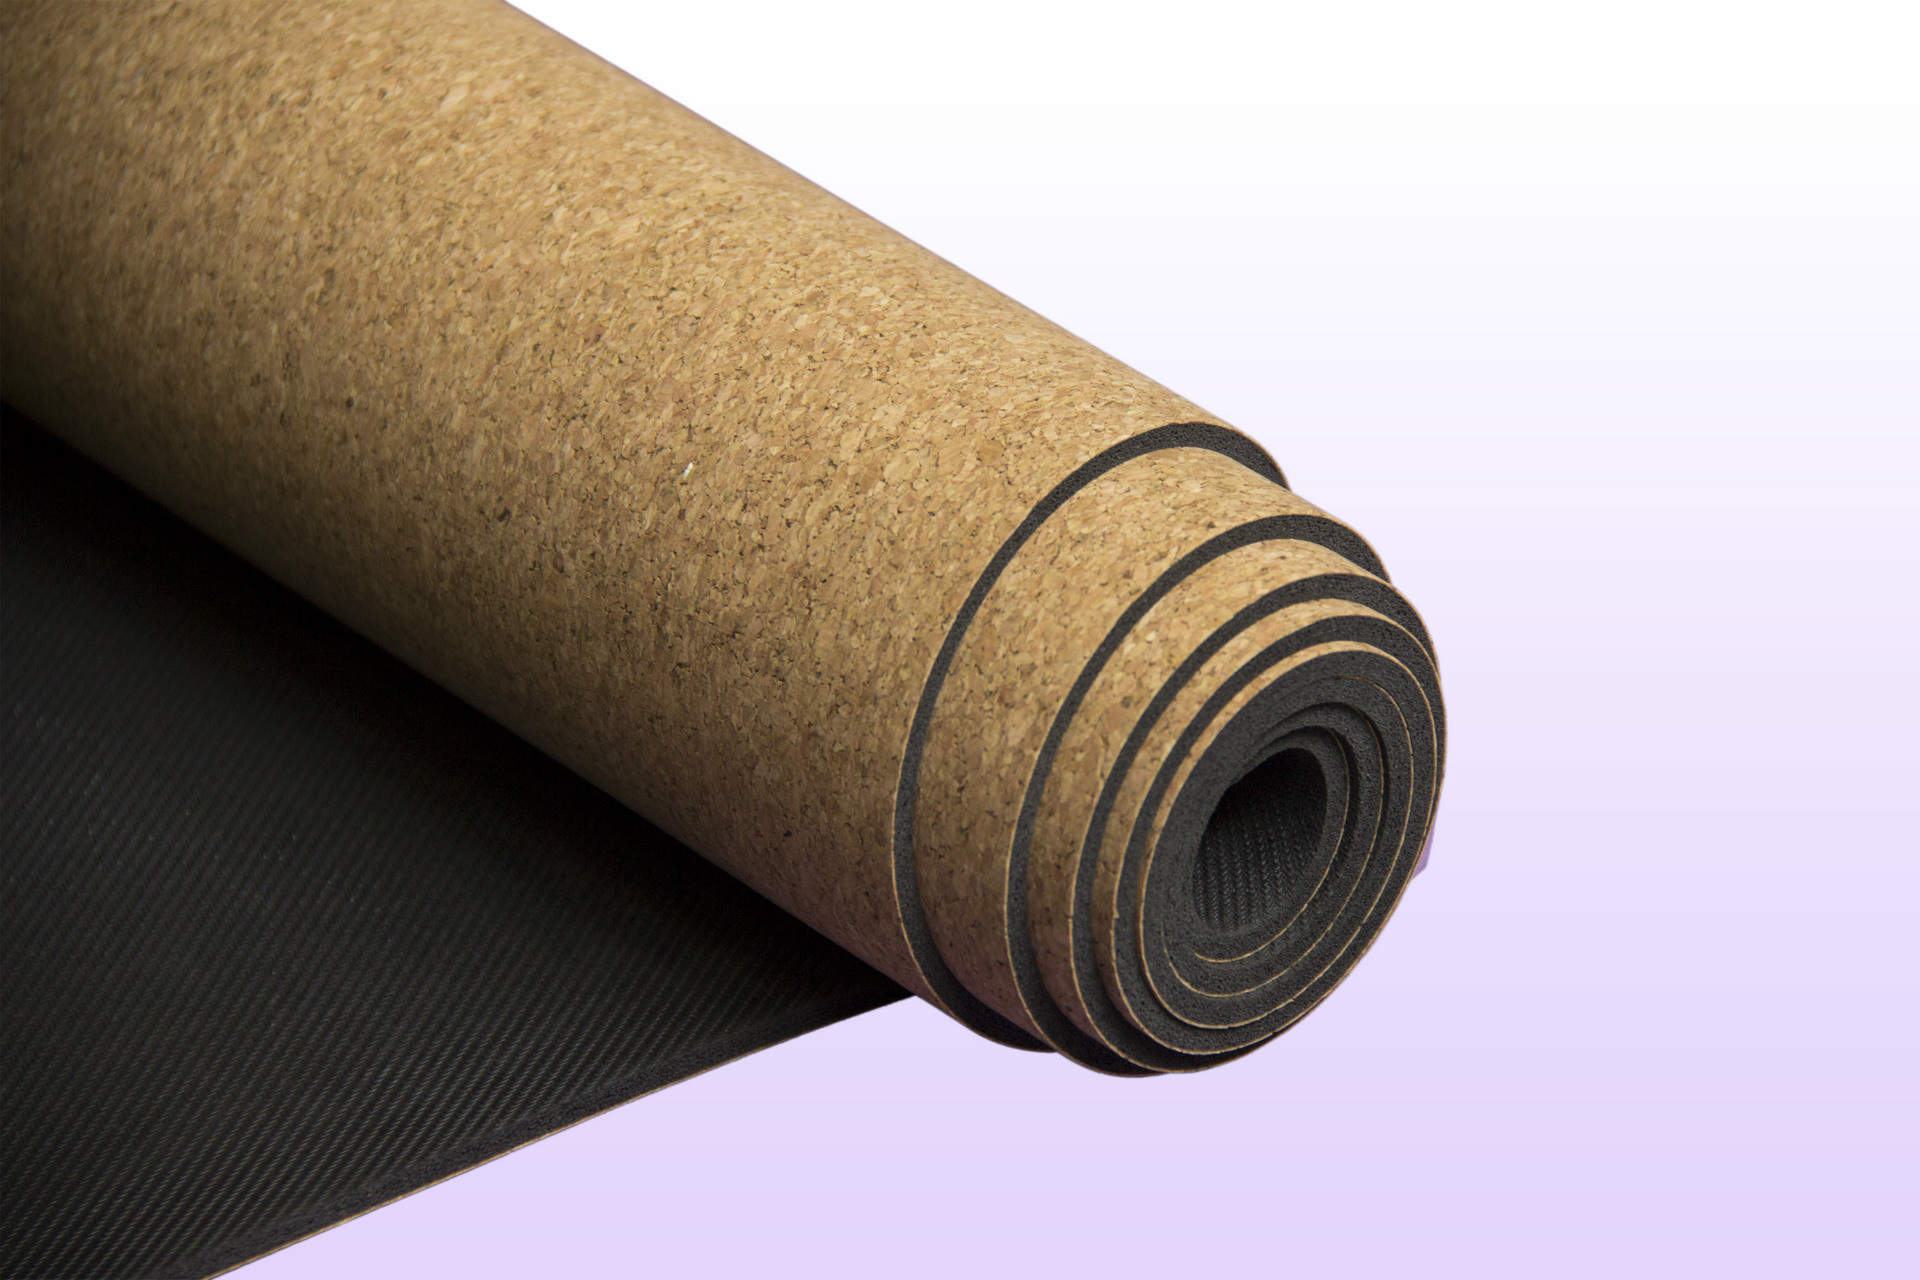 alibaba mat mats cell natural at manufacturers oversize suppliers open and rubber material yoga showroom wholesale com